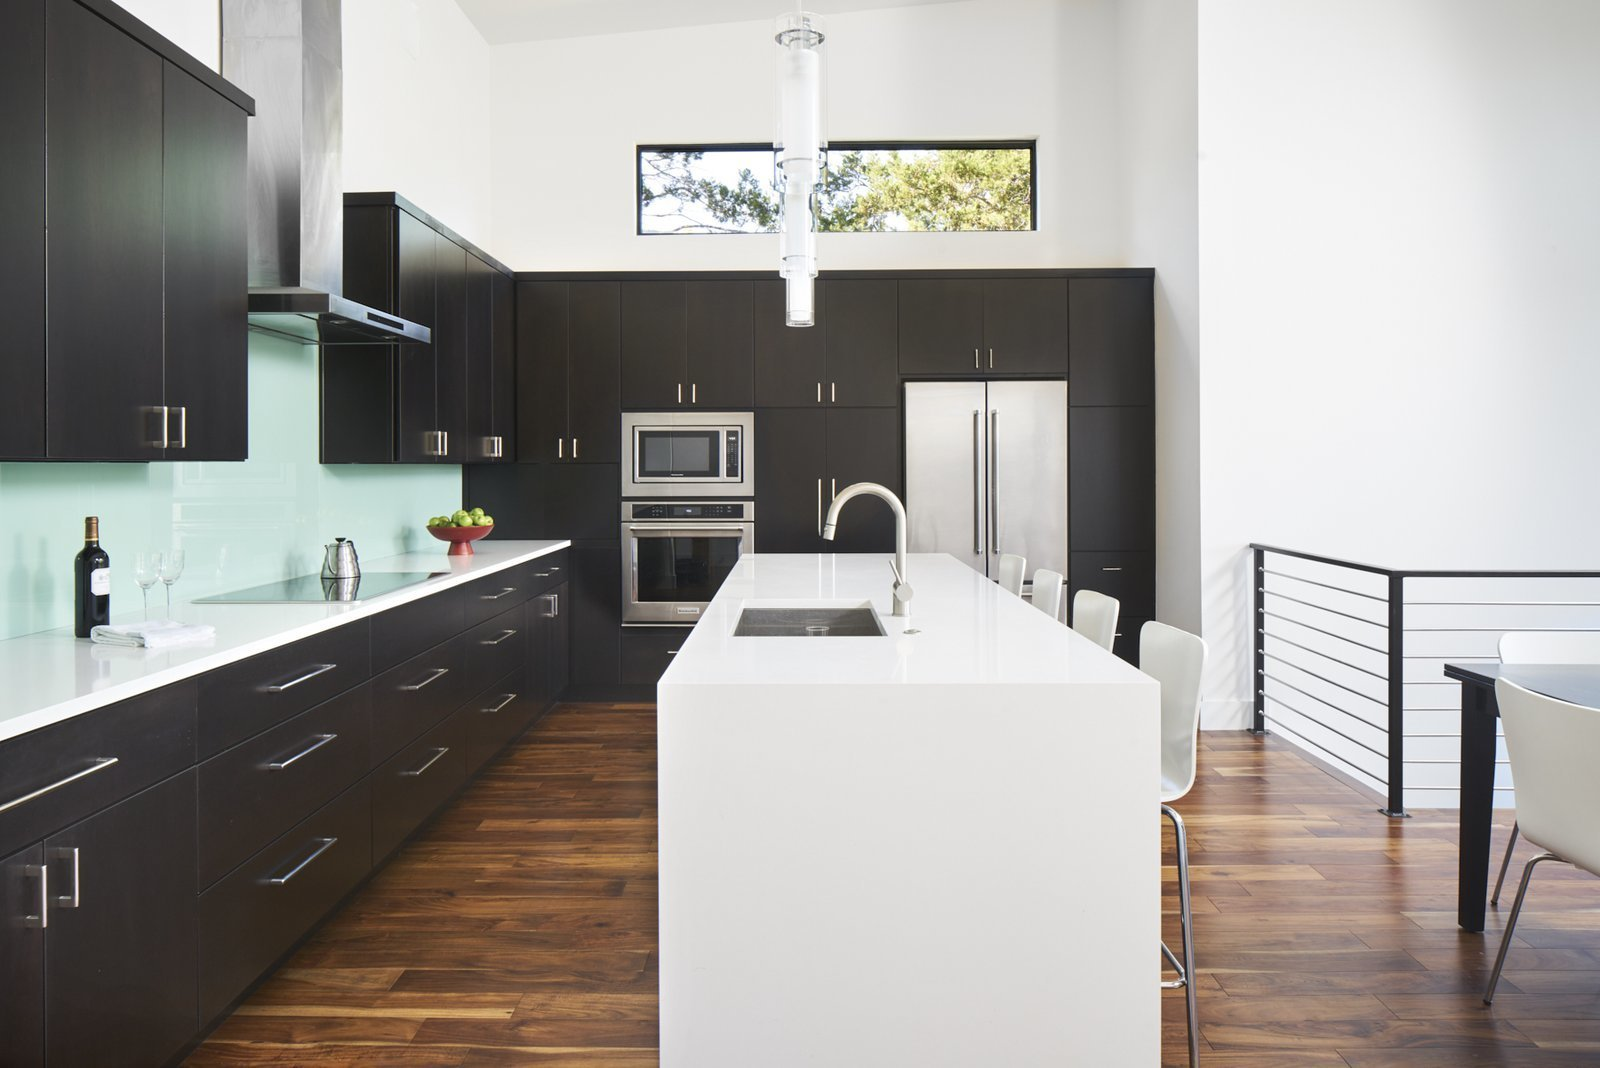 Kitchen, Undermount Sink, Wall Oven, Refrigerator, Microwave, Range Hood, Medium Hardwood Floor, Cooktops, and Pendant Lighting Cameron residence in Austin, Texas  Photo 5 of 7 in 6 Simple Ways to Save on Your Kitchen Renovation